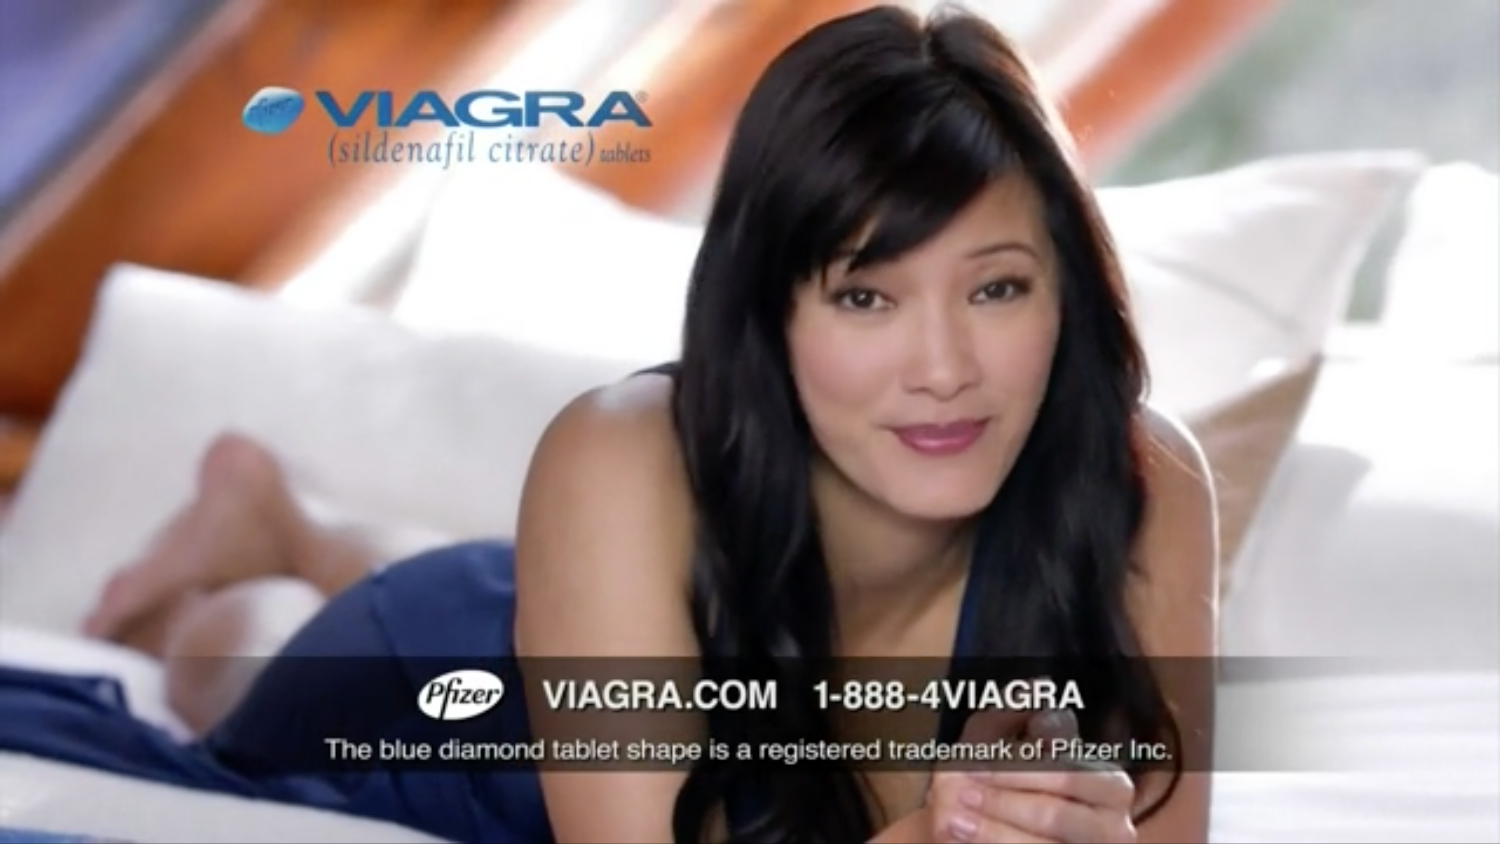 Who is viagra for